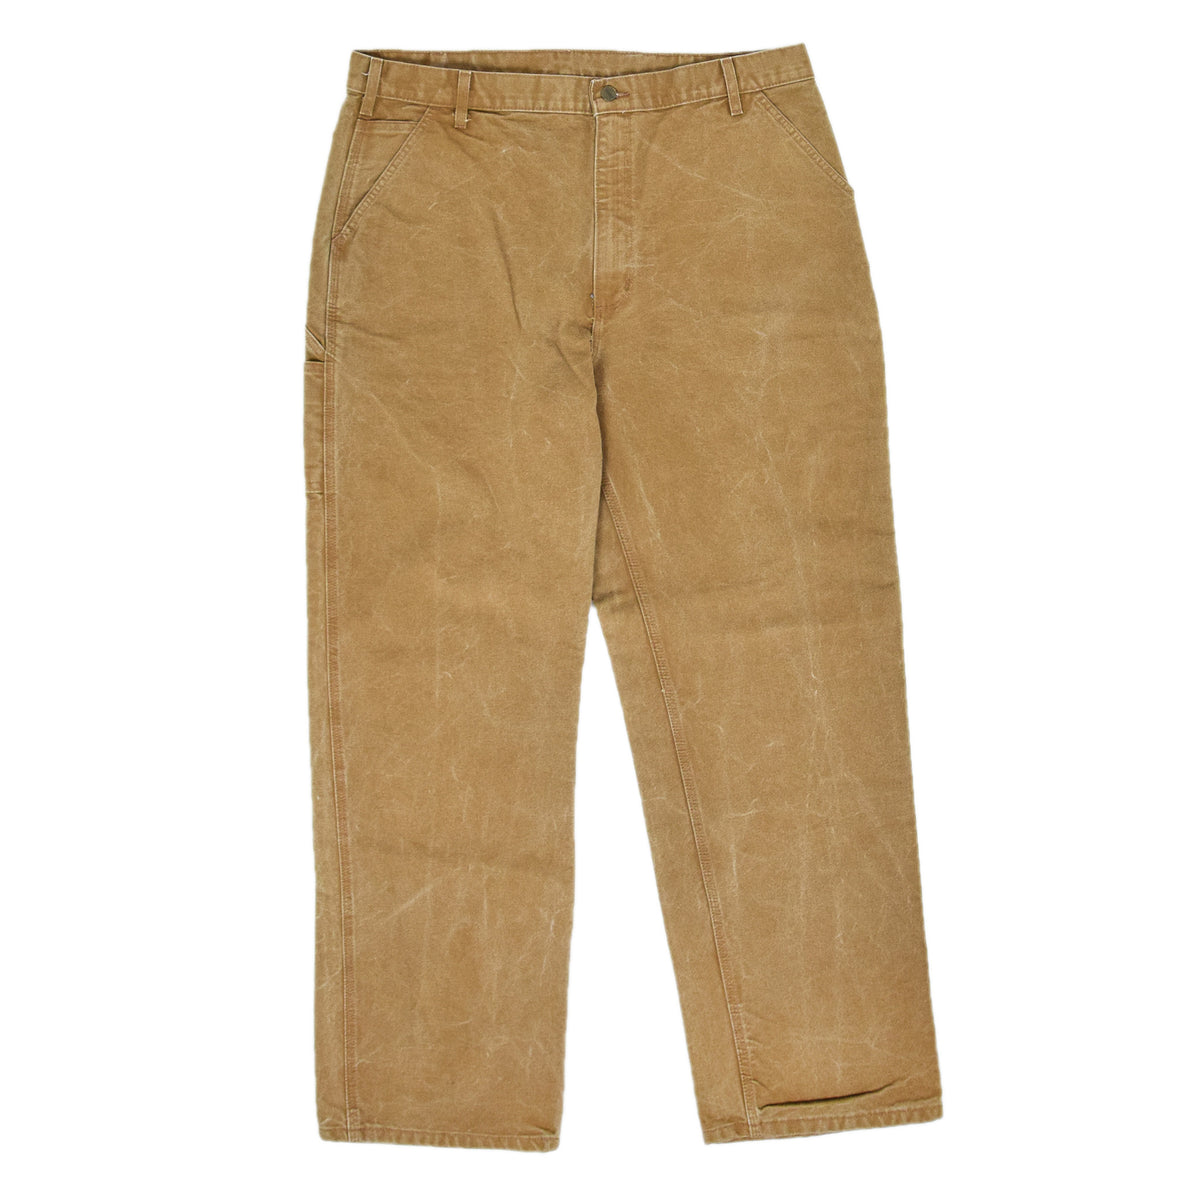 Vintage Carhartt Tan Brown Duck Canvas Utility Work Pant Dungaree Fit 38 W 32 L front